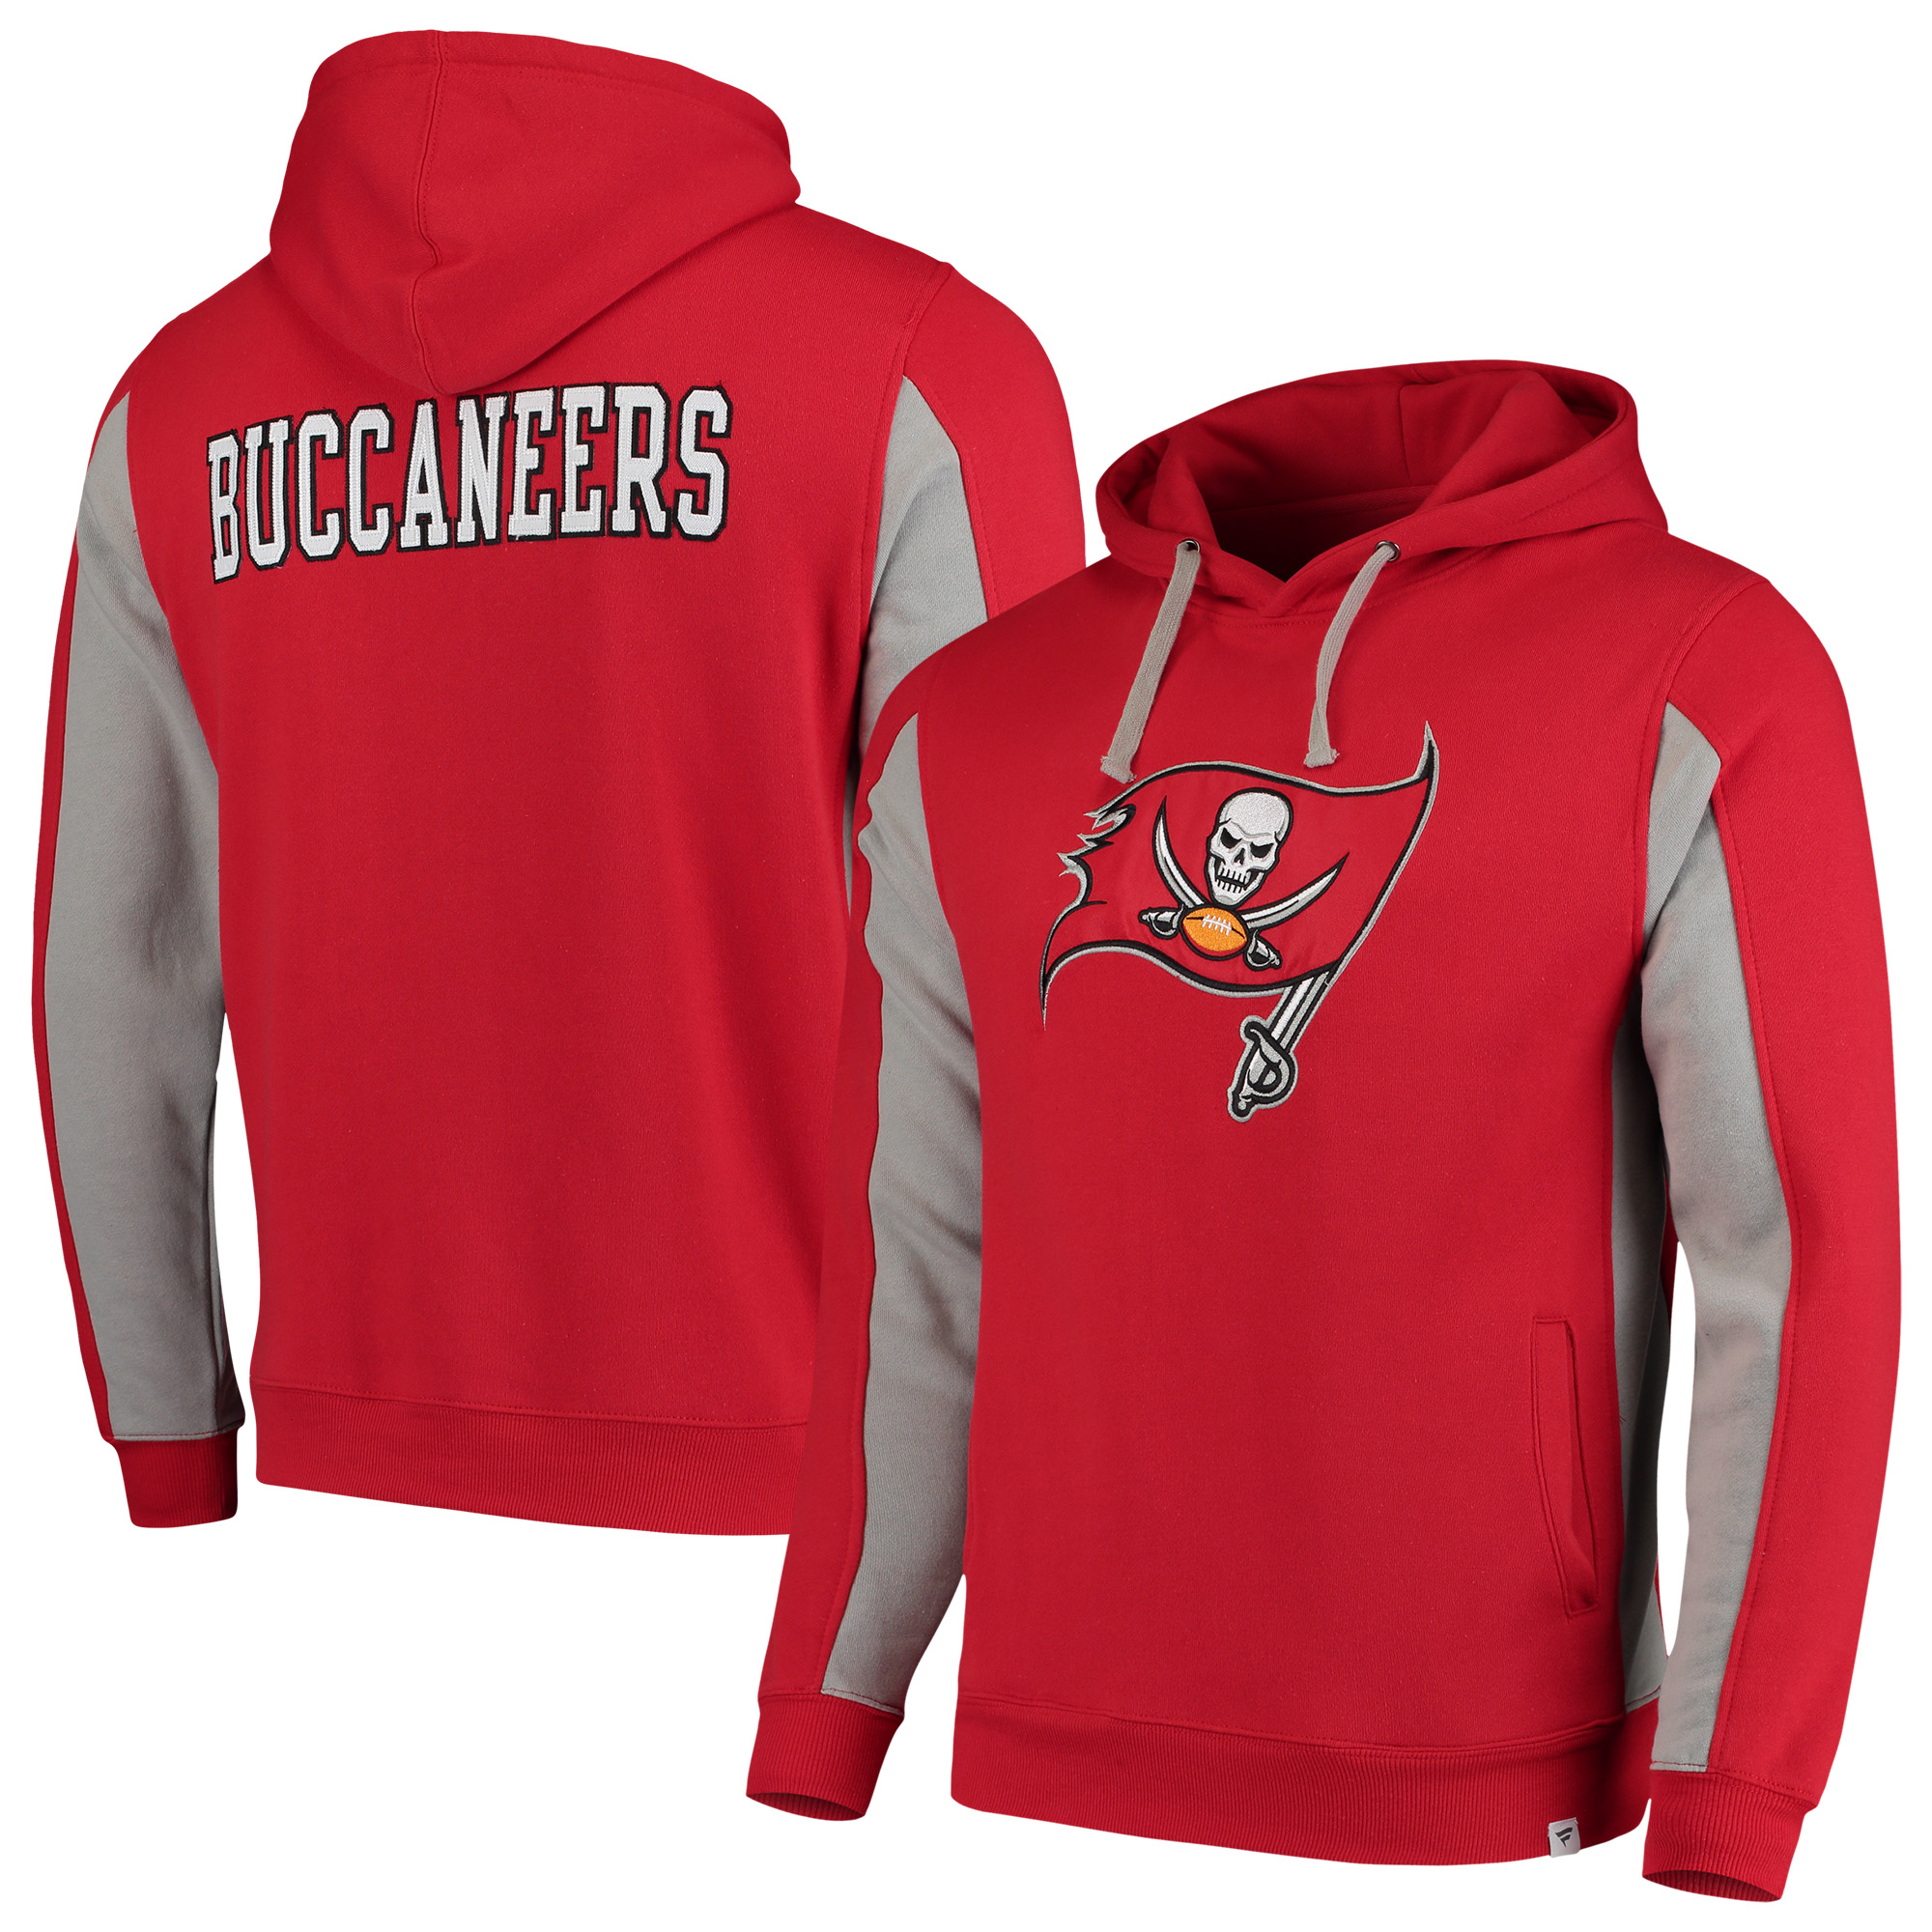 Tampa Bay Buccaneers NFL Pro Line by Fanatics Branded Team Iconic Pullover Hoodie - Red